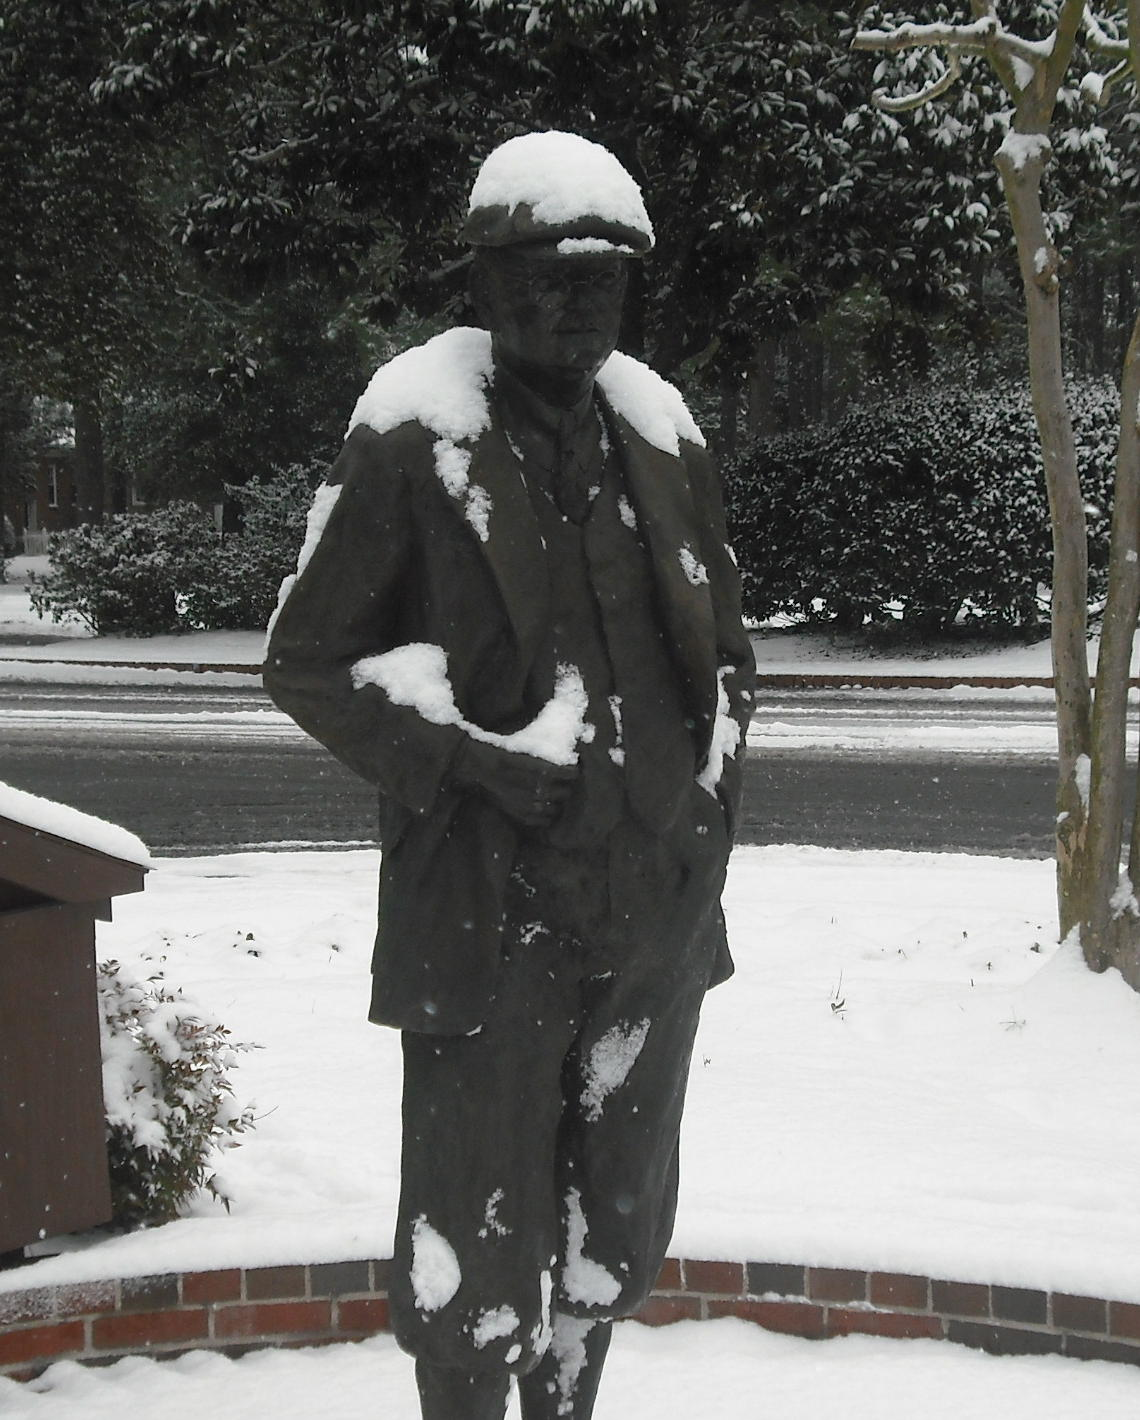 Statue of Donald Ross under snow